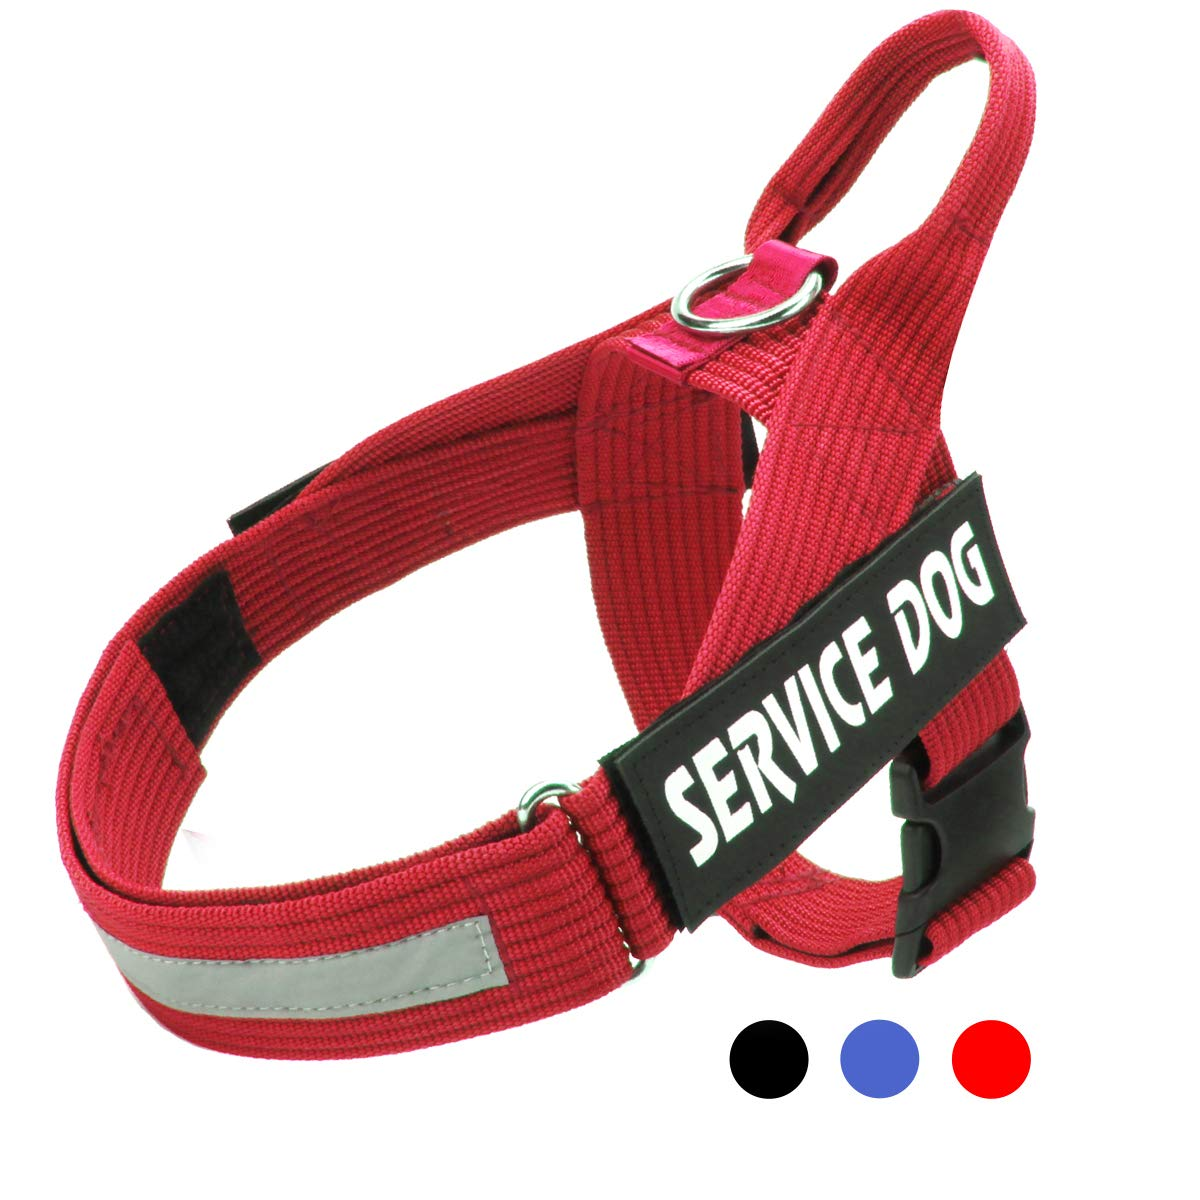 Red M  chest 22-29'' (56-74 cm) Red M  chest 22-29'' (56-74 cm) Bolux Heavy Duty No Pull Dog Harness Reflective Adjustable Nylon Webbing Harness Medium & Large Dogs(Red,M)